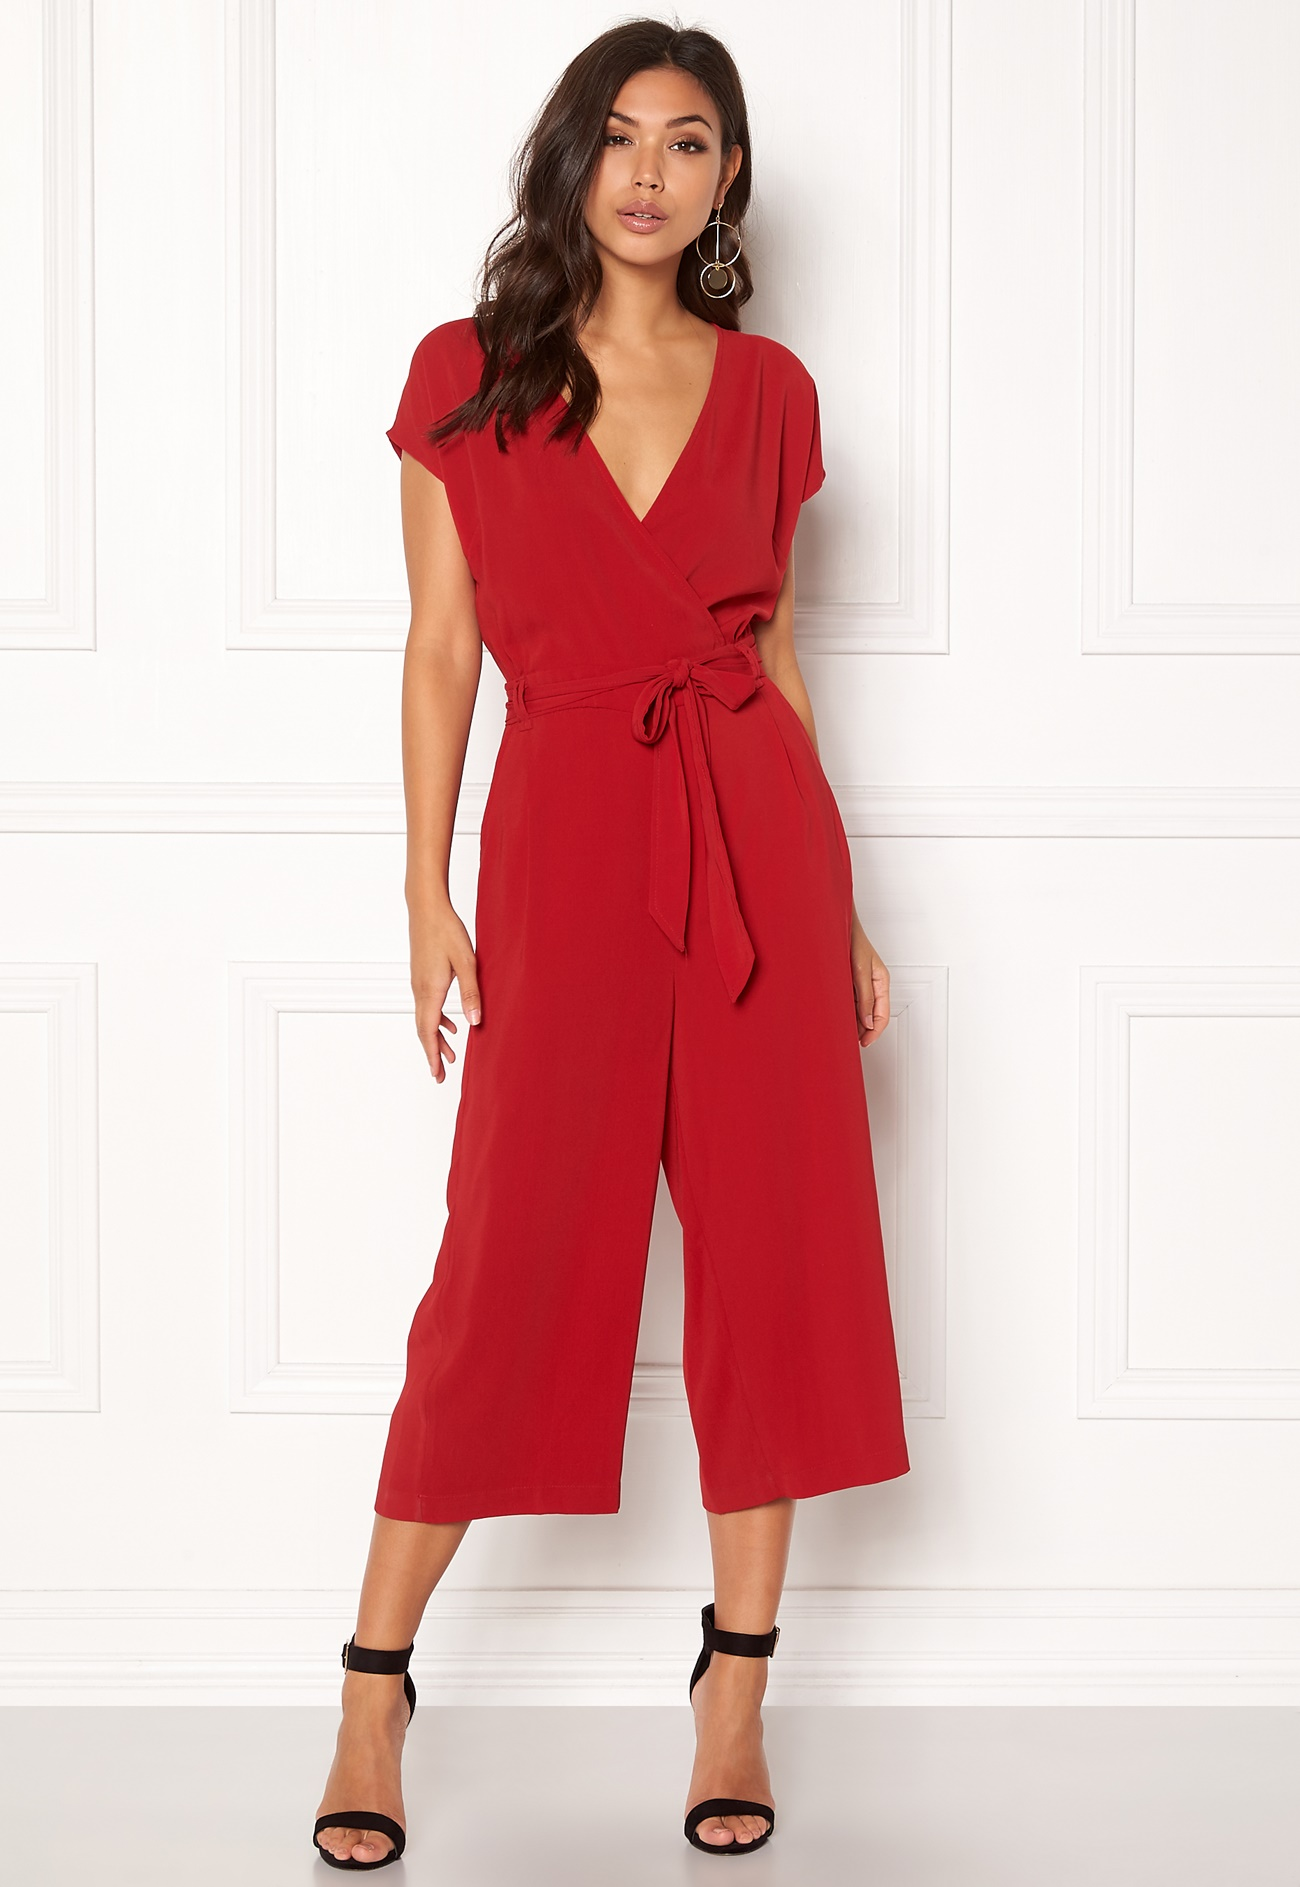 Buy styles of sexy women's rompers, jumpsuits, and other onesies starting at $ Find many cute rompers & jumpsuits for women. Shop a selection of designer sexy jumpsuits, cute rompers for .